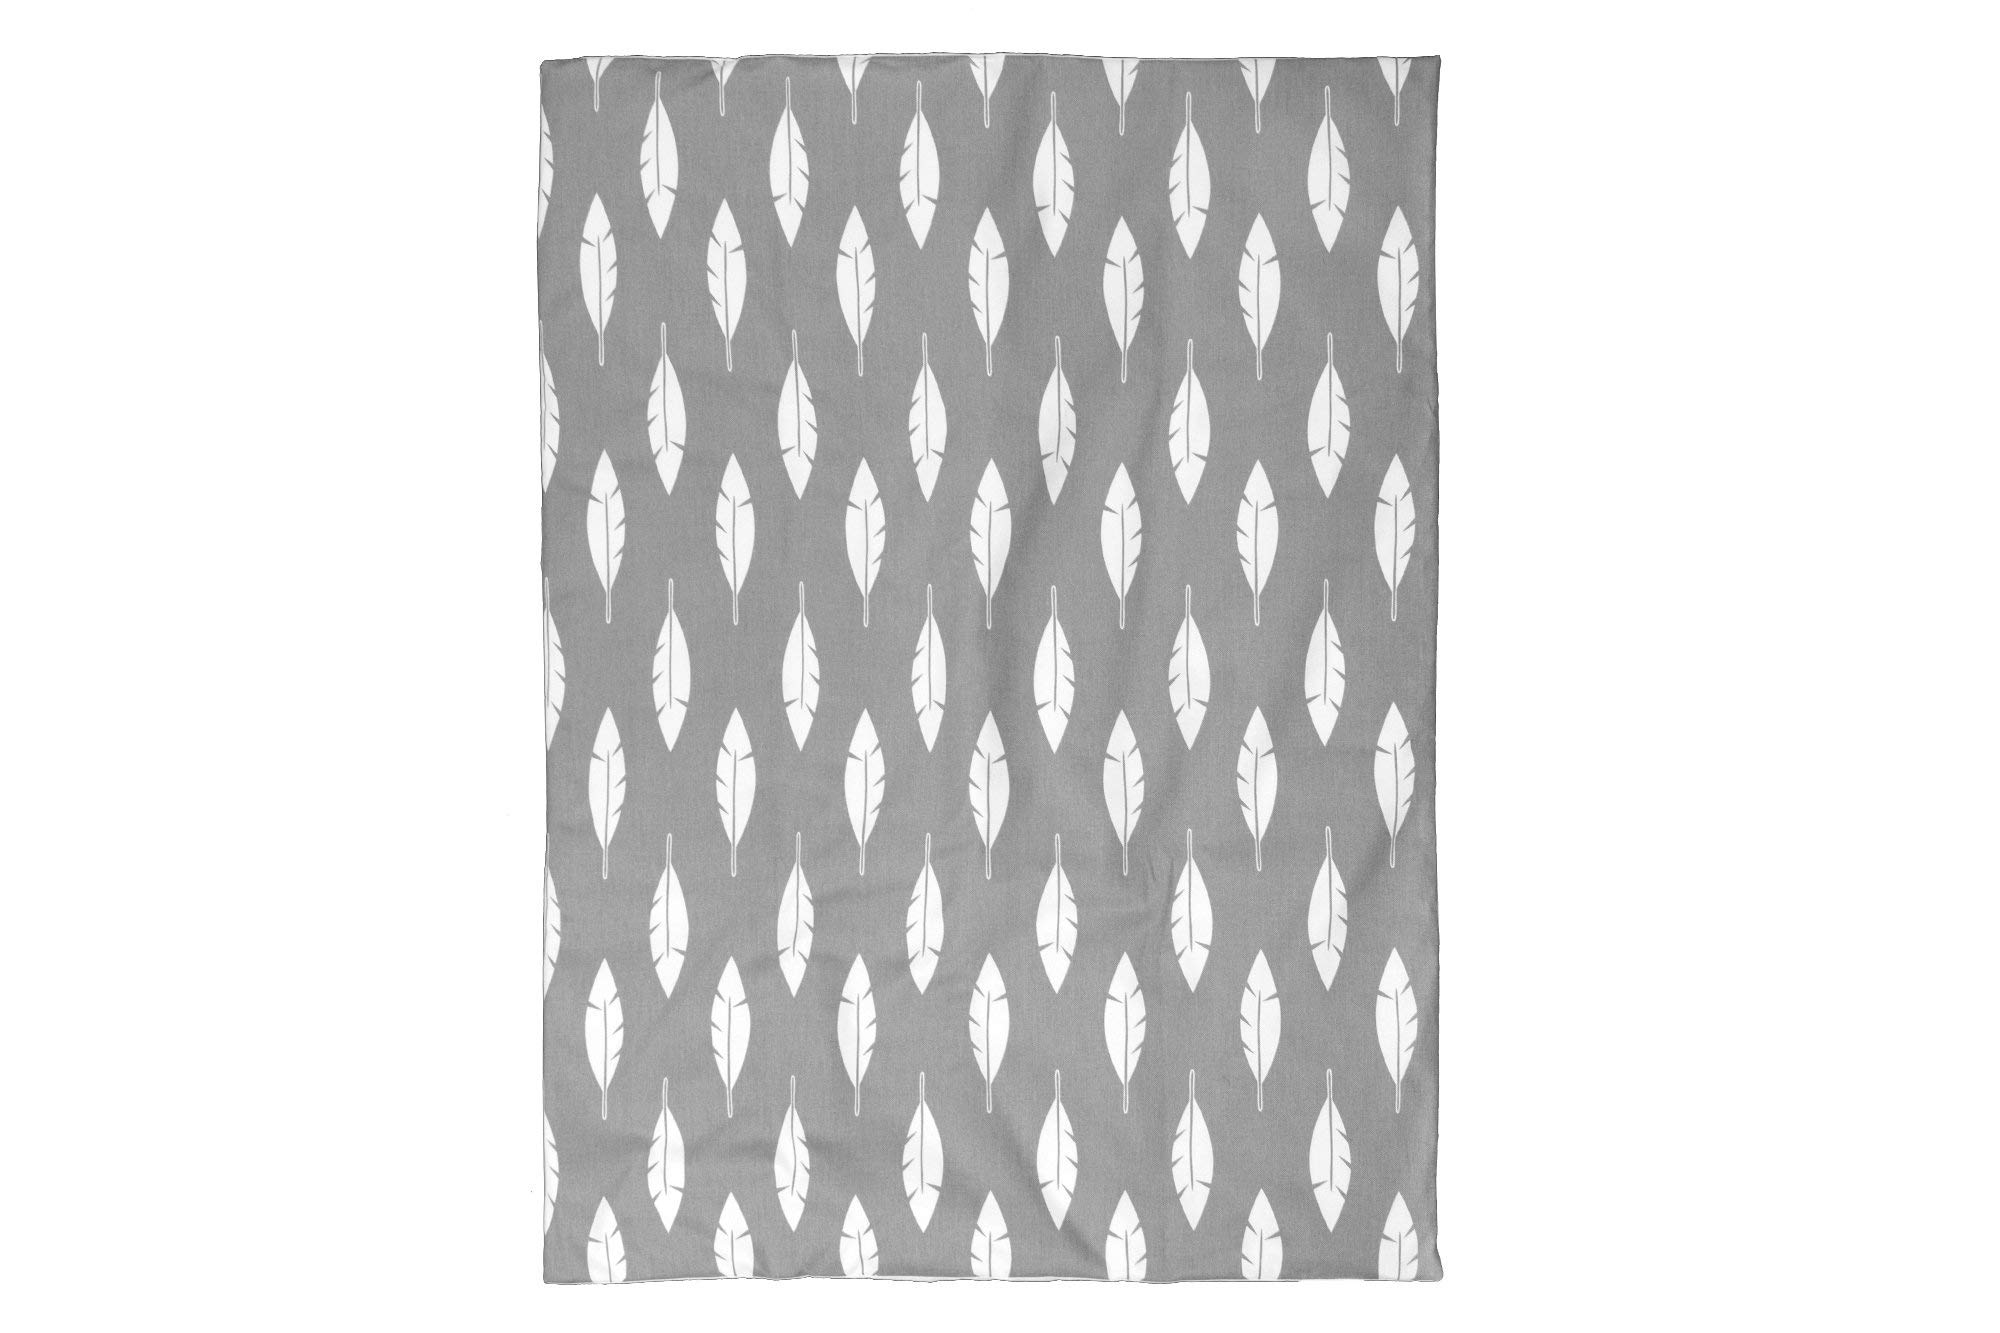 BOOBEYEH & DESIGN Baby Crib Bedding 4 Piece Set, Perfect for Baby Girls and Boys, Includes Gray and White Feather Design, Fitted Sheet, Crib Comforter, Comforter Cover, Skirt. by BOOBEYEH & DESIGN (Image #2)